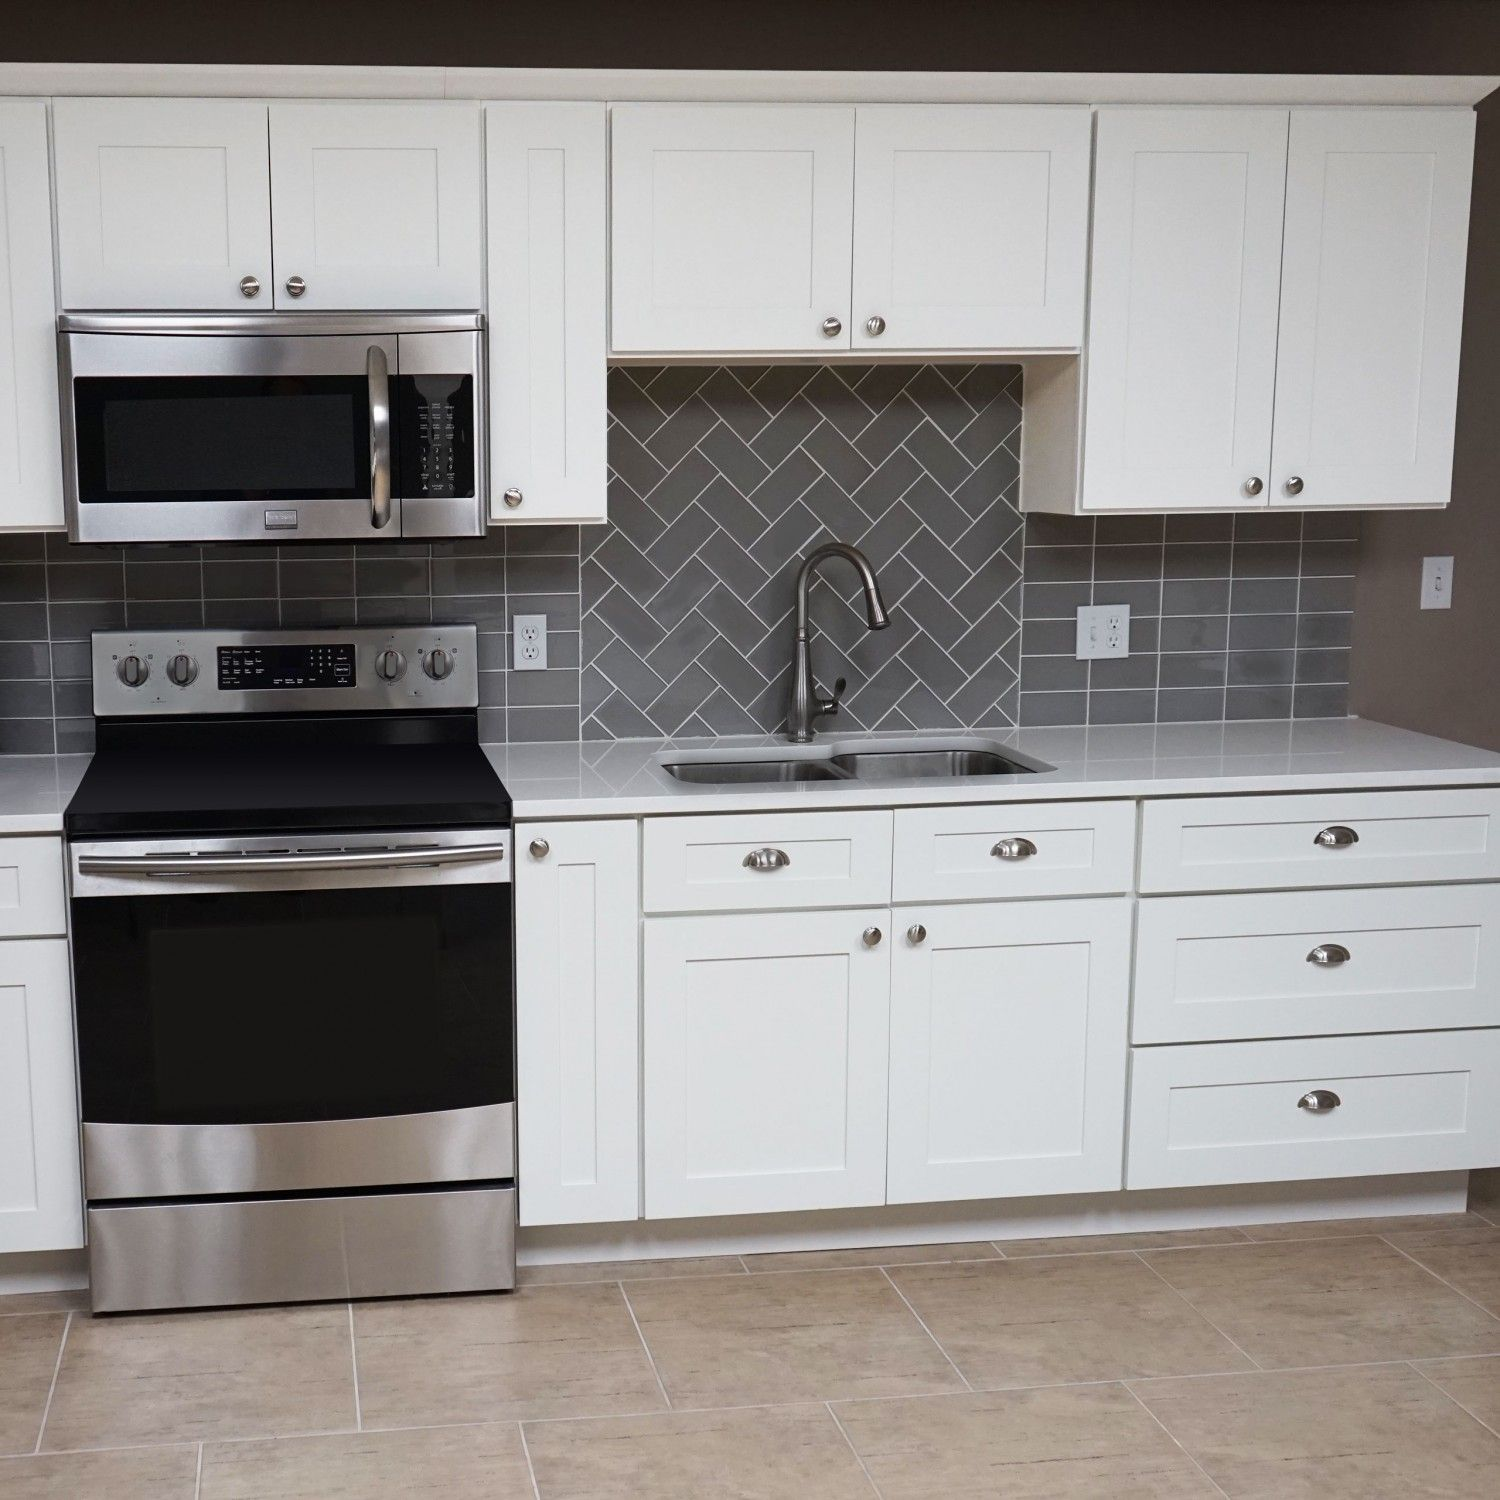 10 Ft Run Kitchen Cabinets Bundle In Shaker White With Soft Close Drawers Doors Everyday Cabinets Kitchen Cabinets Kitchen Doors Kitchen Decor